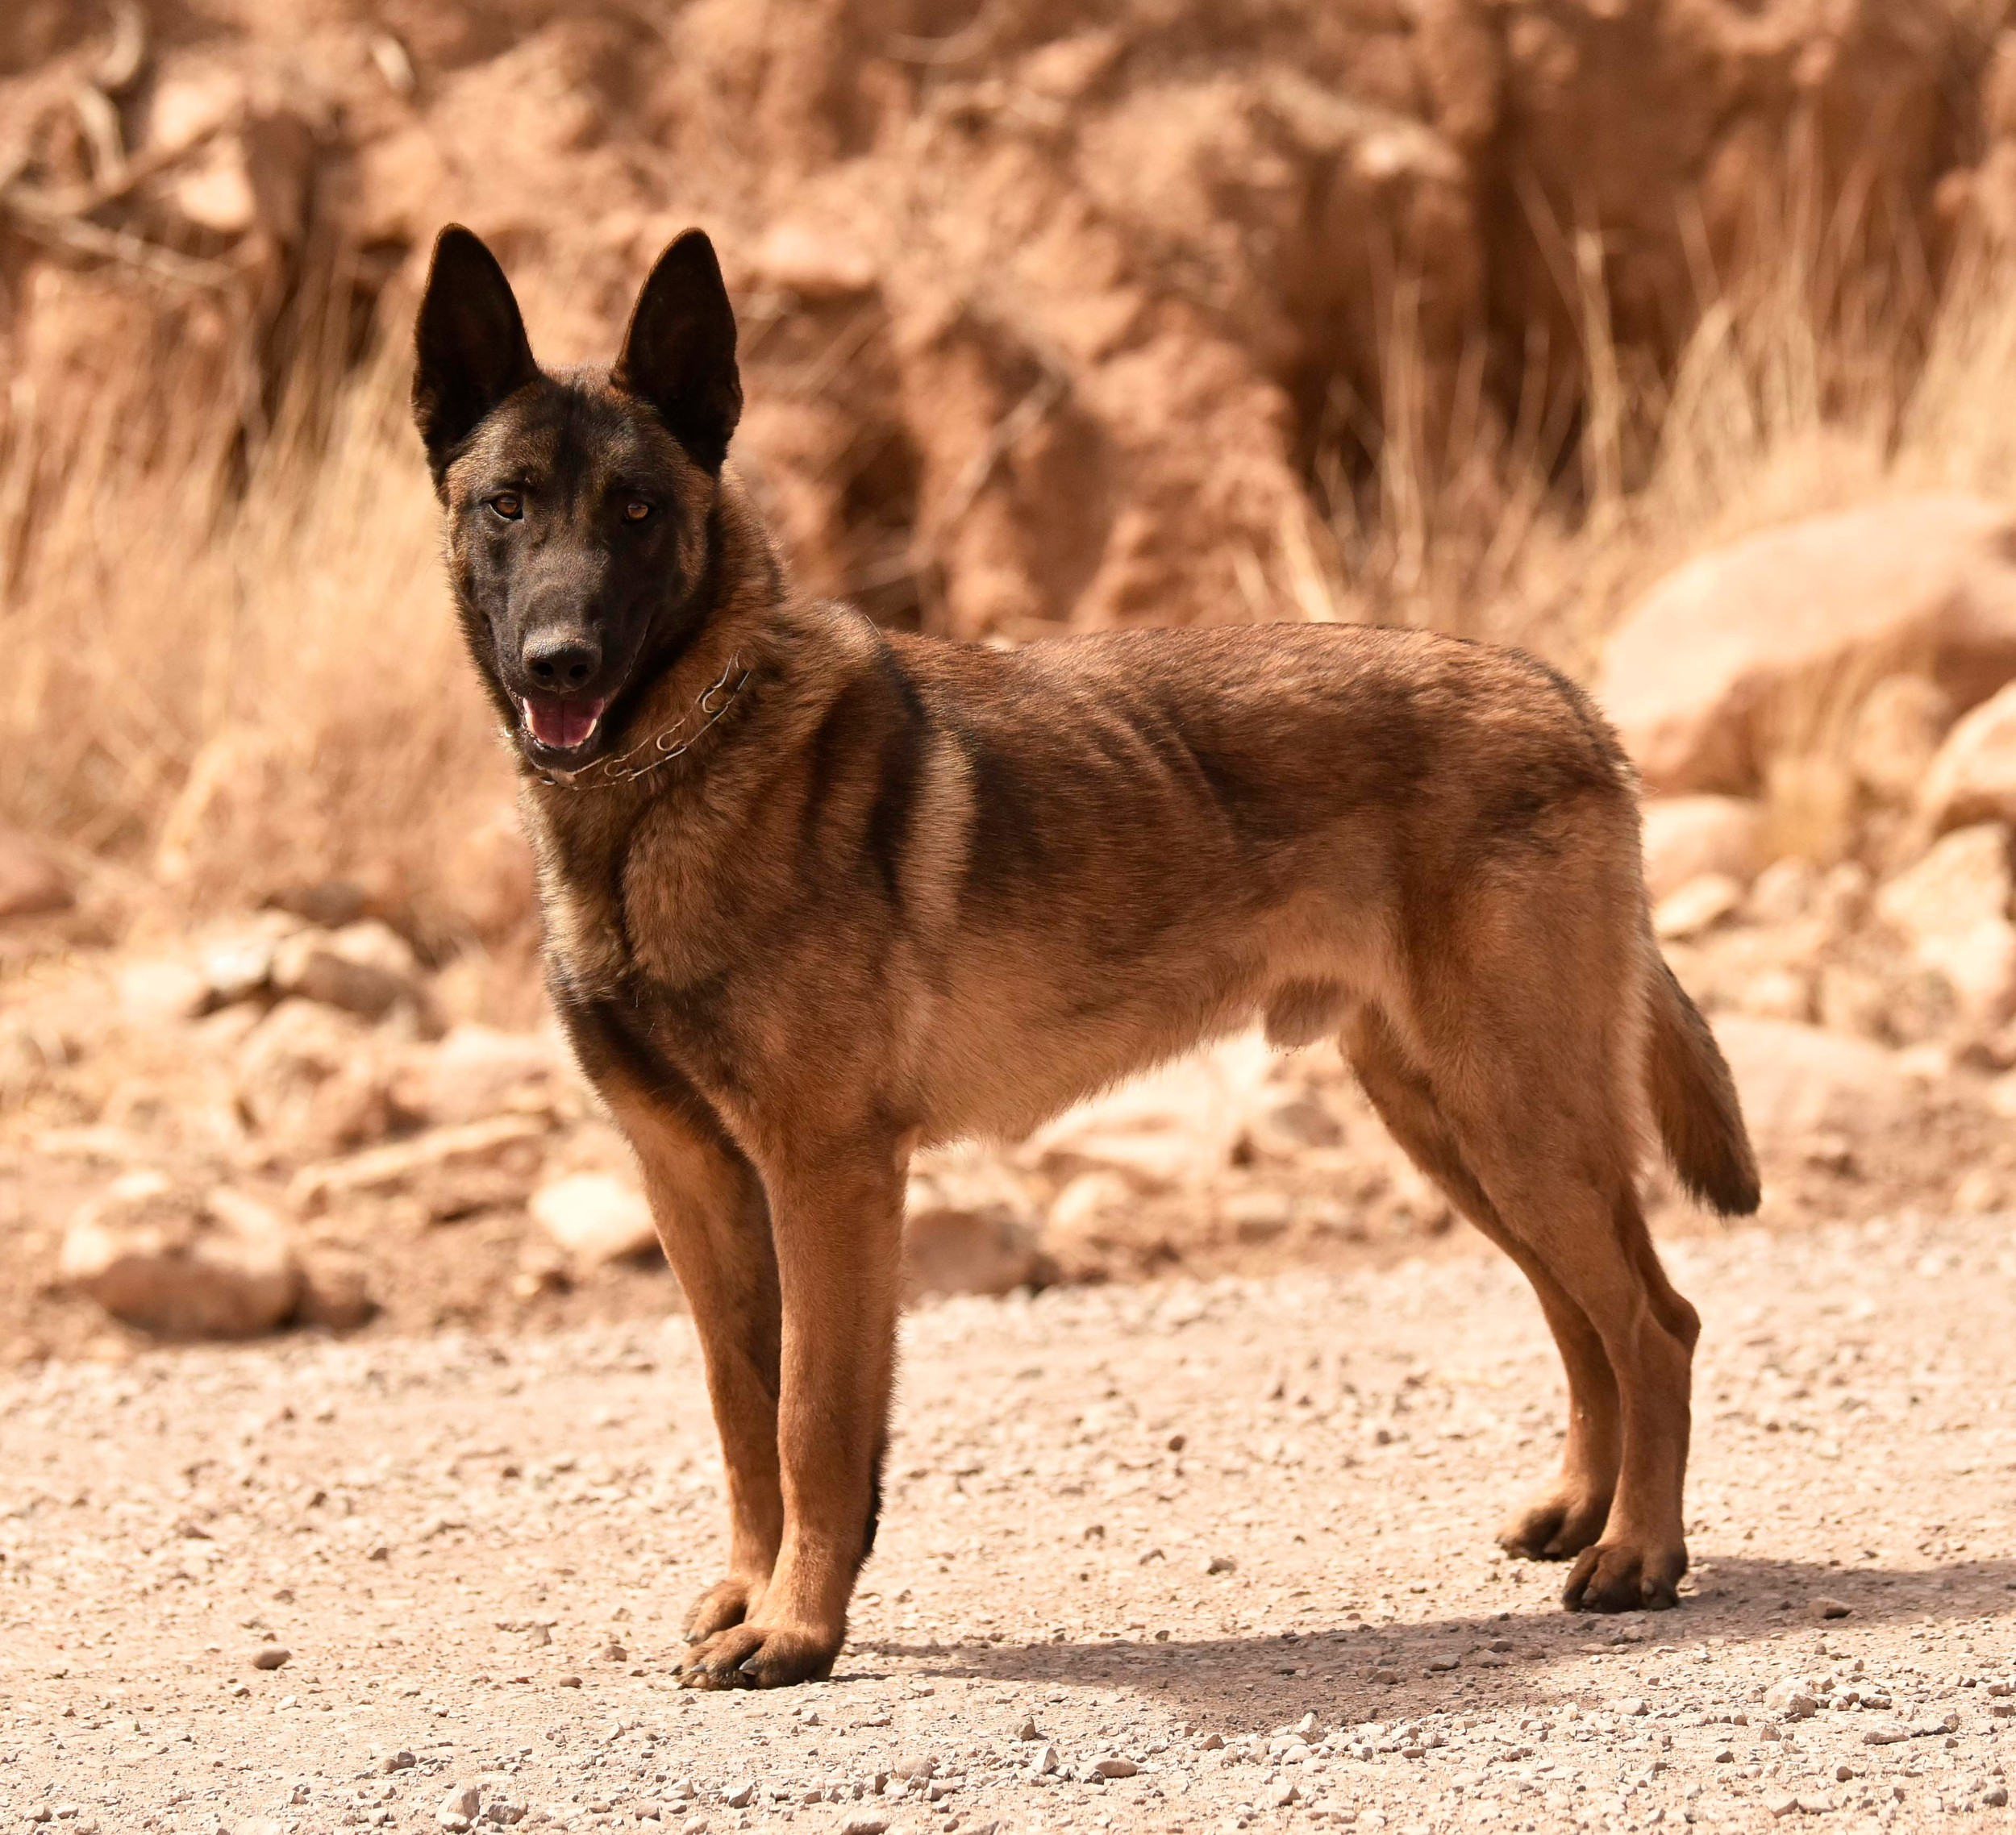 Hart, a 2-year-old Belgian Malinois from the Czech Republic, is one of the newest members of the Cartersville City School System. He and his yet-to-be-named handler will patrol the high school as an added security measure.